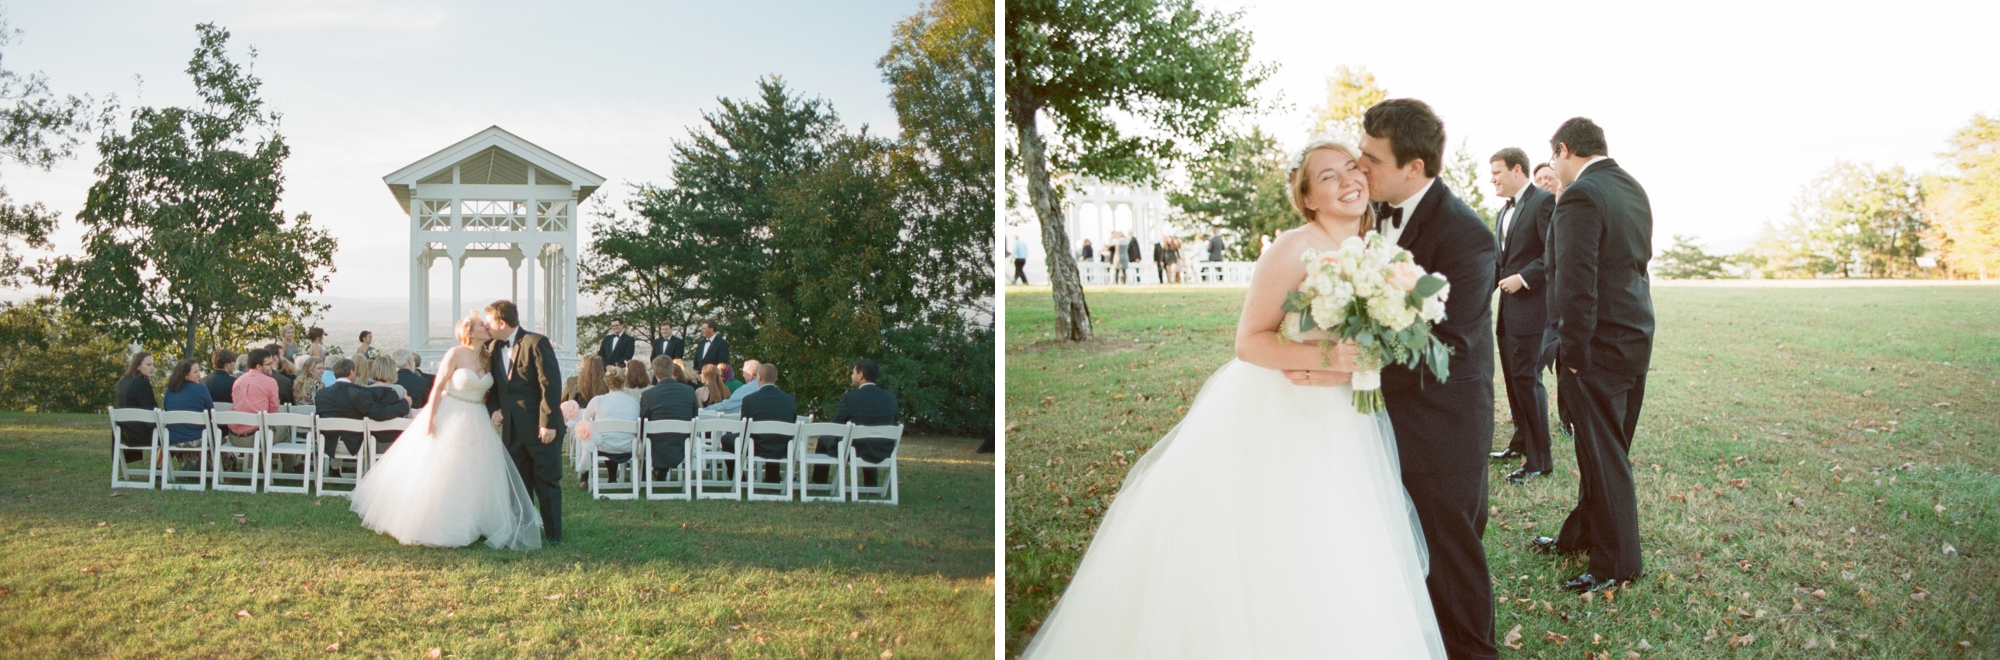 southern wedding film photographer_0036